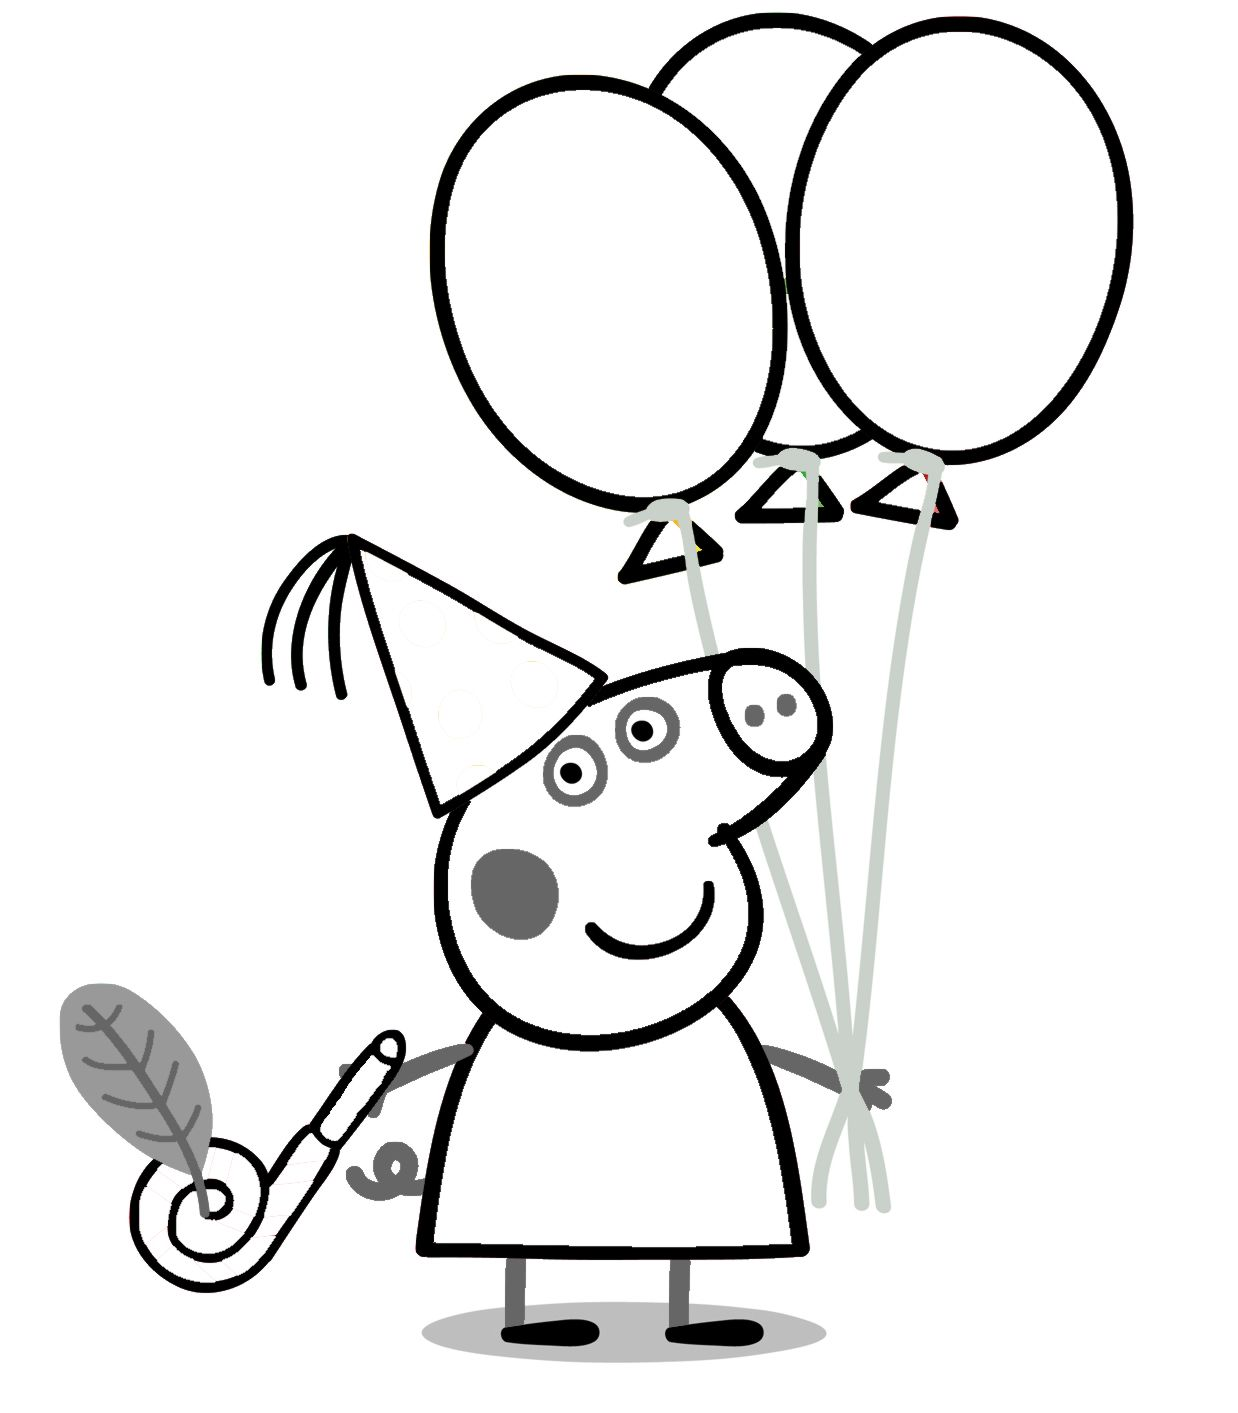 Peppa Pig Coloring Pages Google Search Peppa Pig Coloring